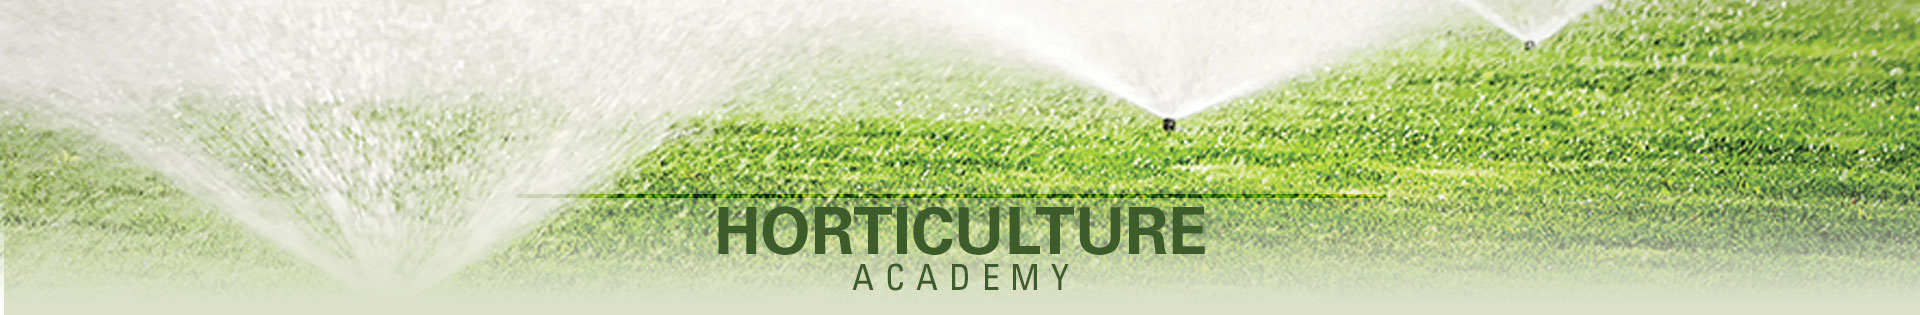 Horticulture Academy Banner